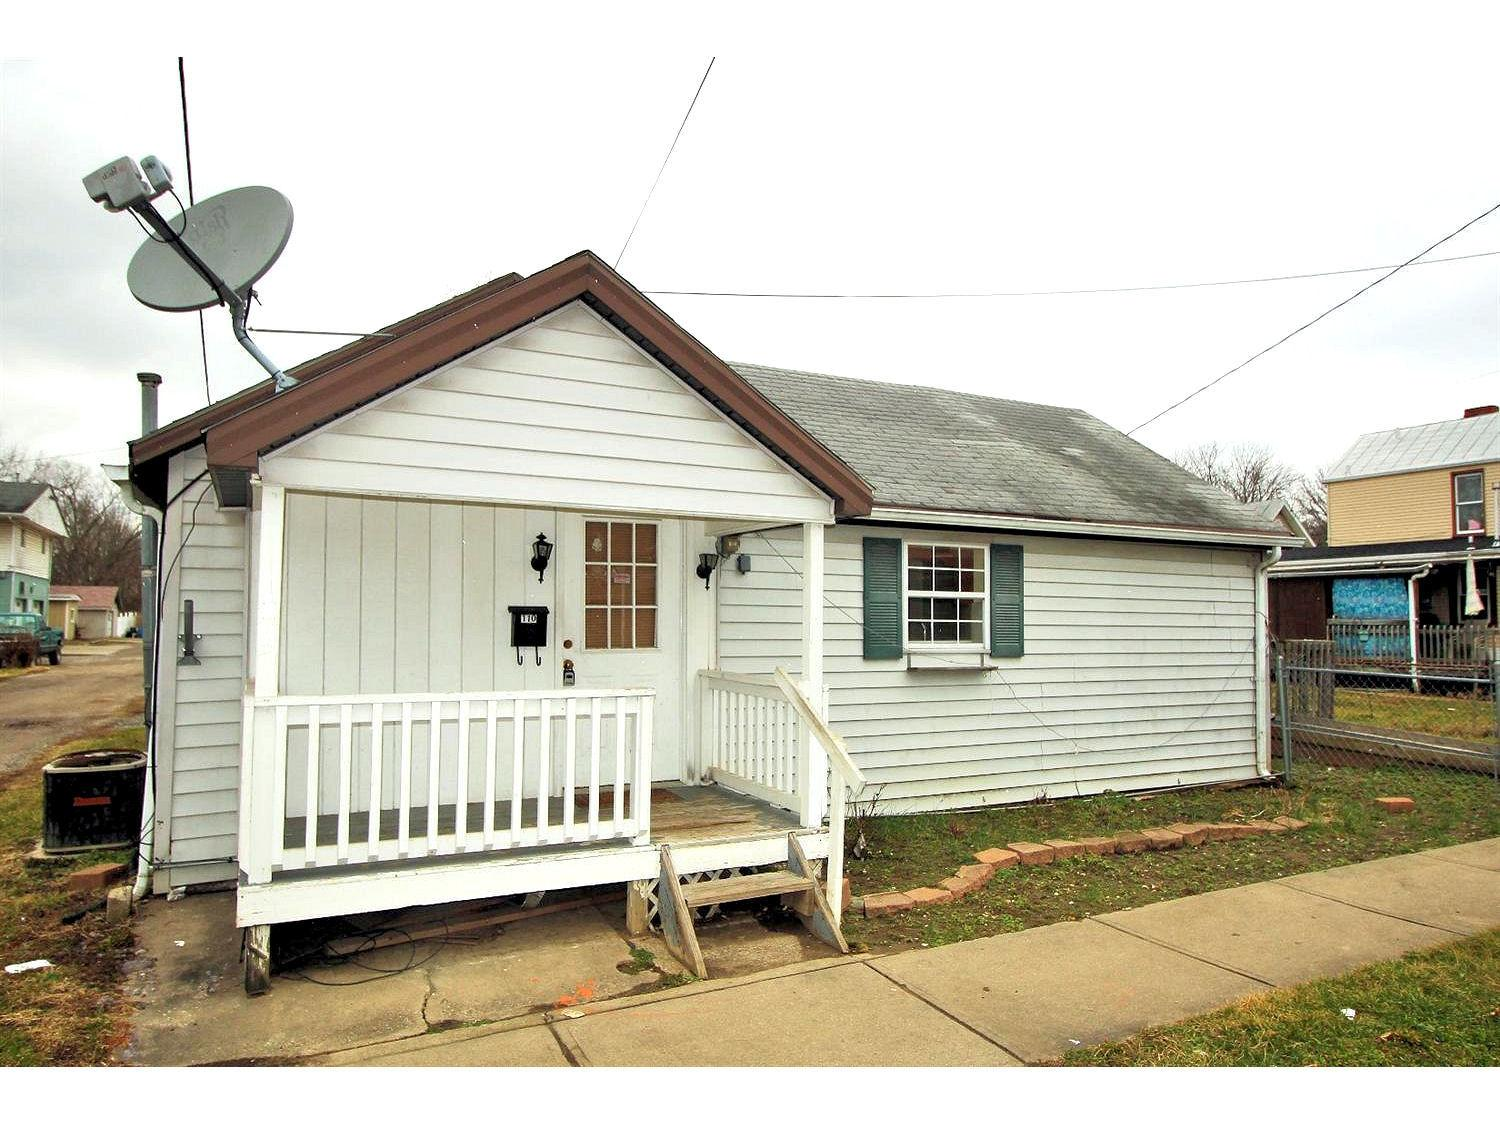 110 West Markland Street, Cleves, OH 45002